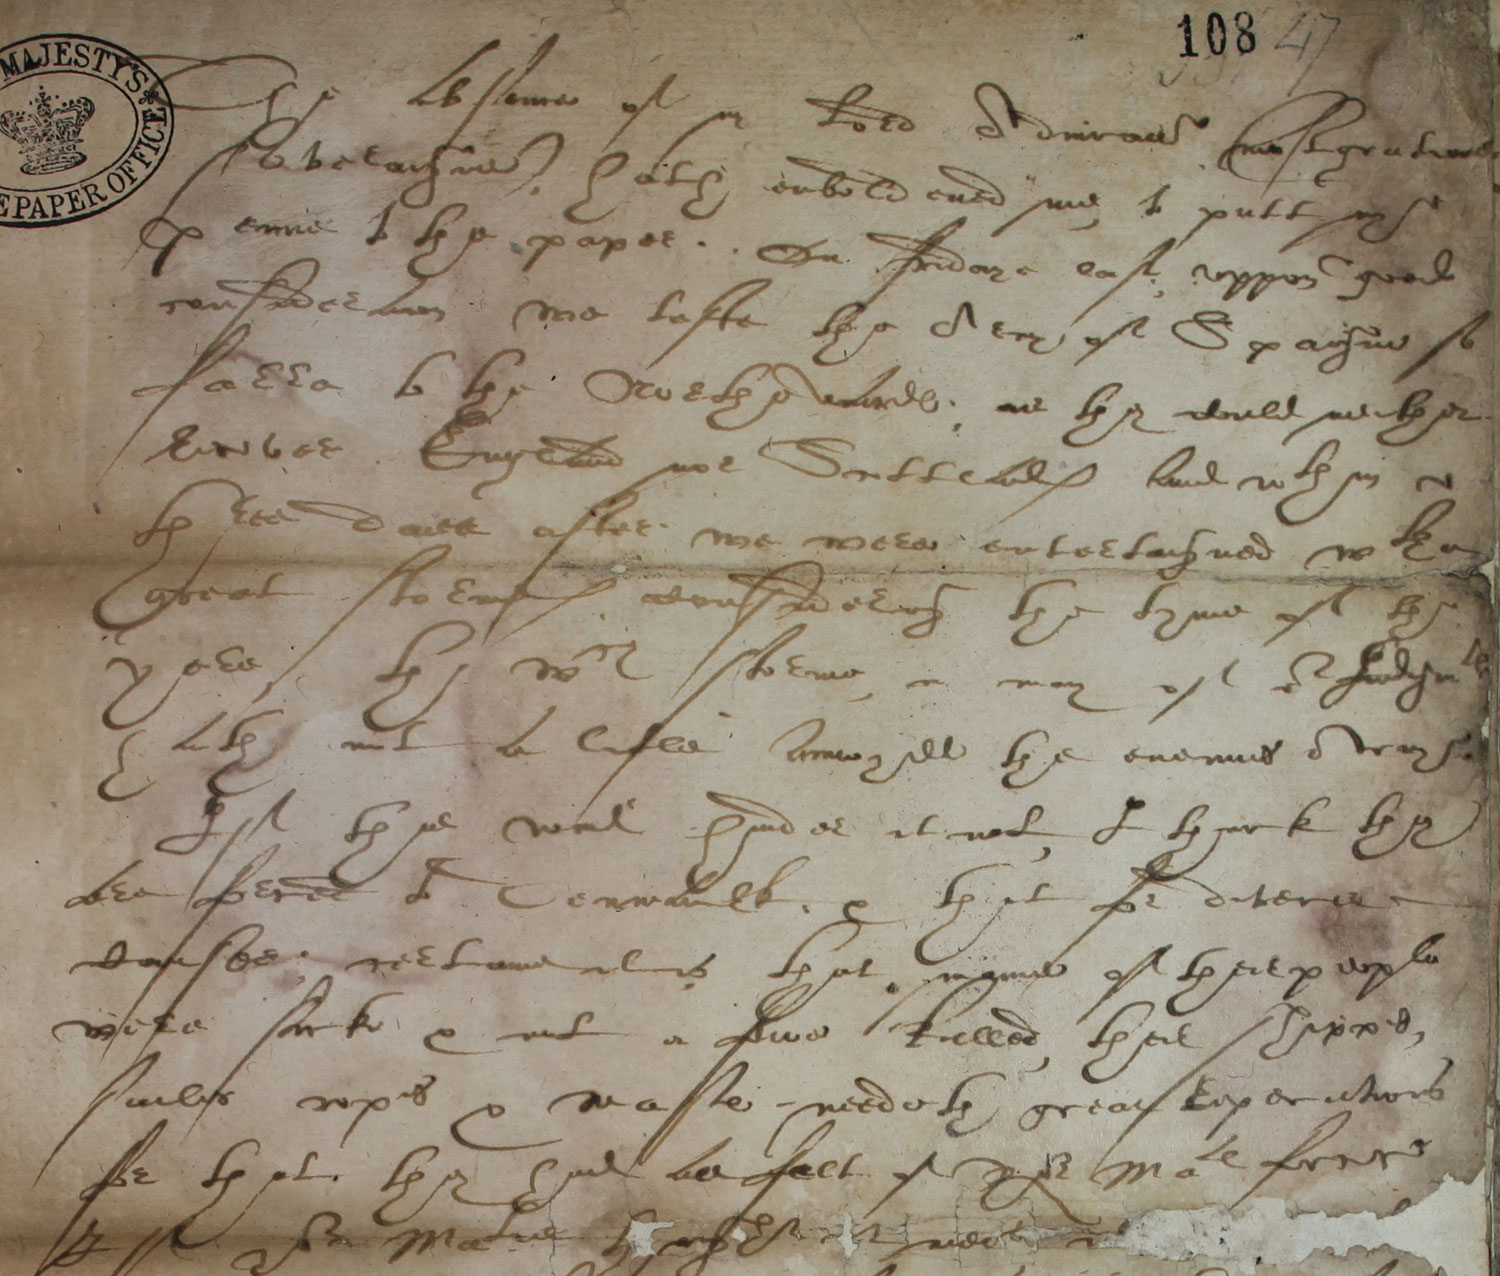 Sir Francis Drake to Elizabeth, 8 August 1588 (SP 12/214 f.108)